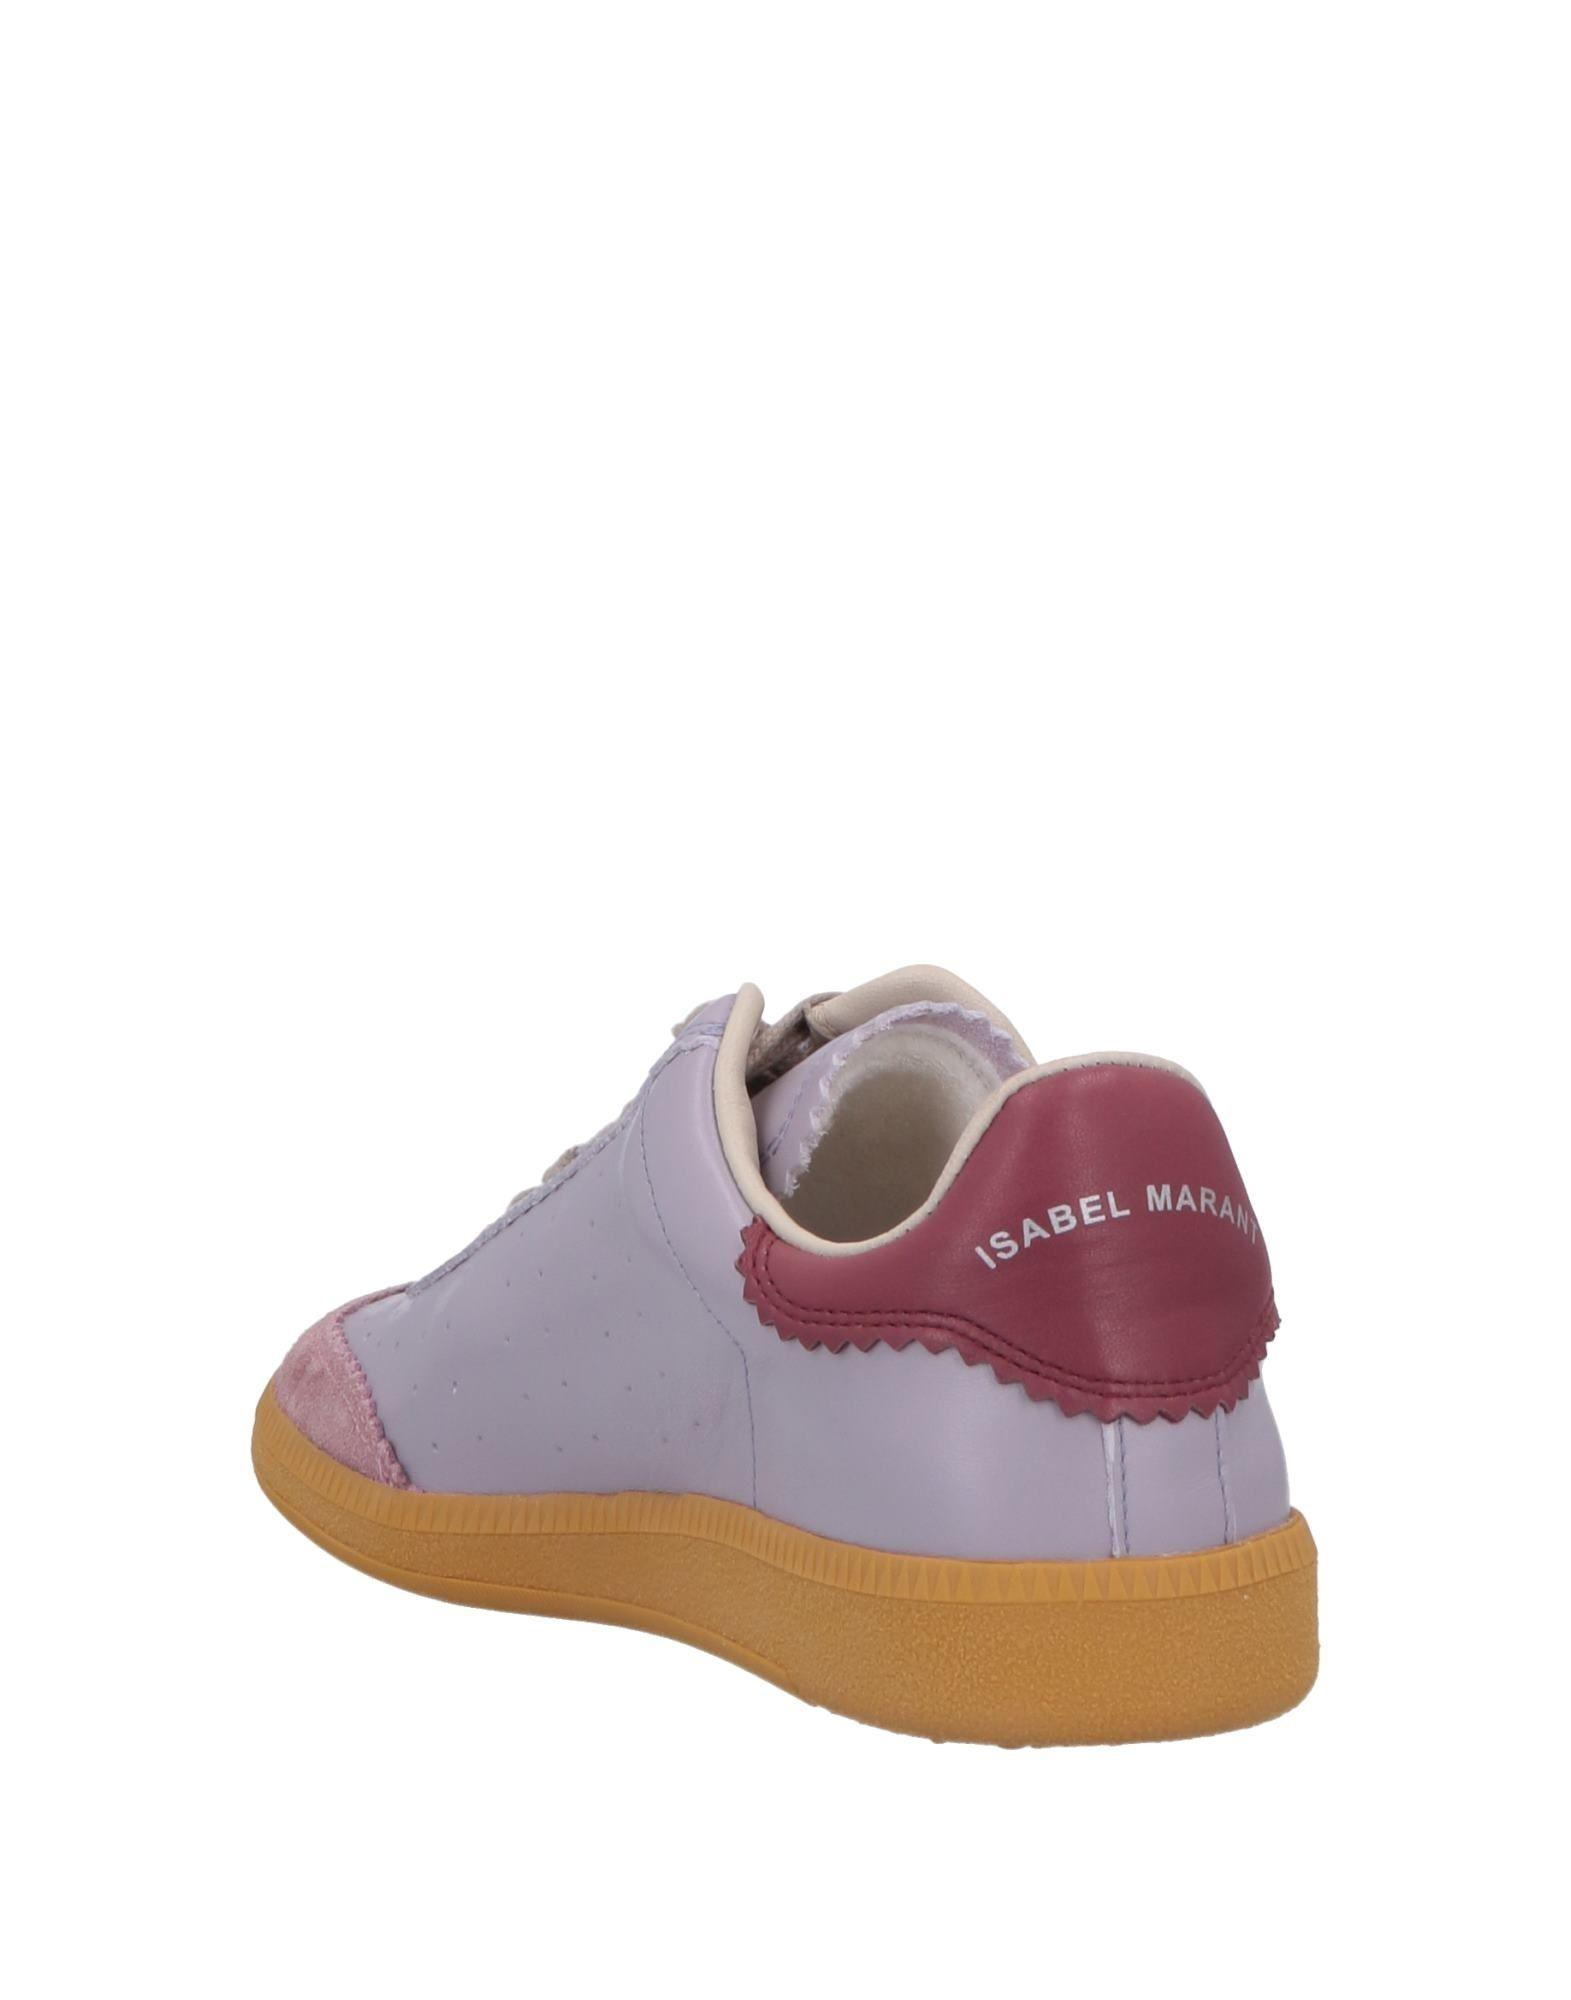 Isabel Marant Leather Low-tops & Sneakers in Lilac (Purple)